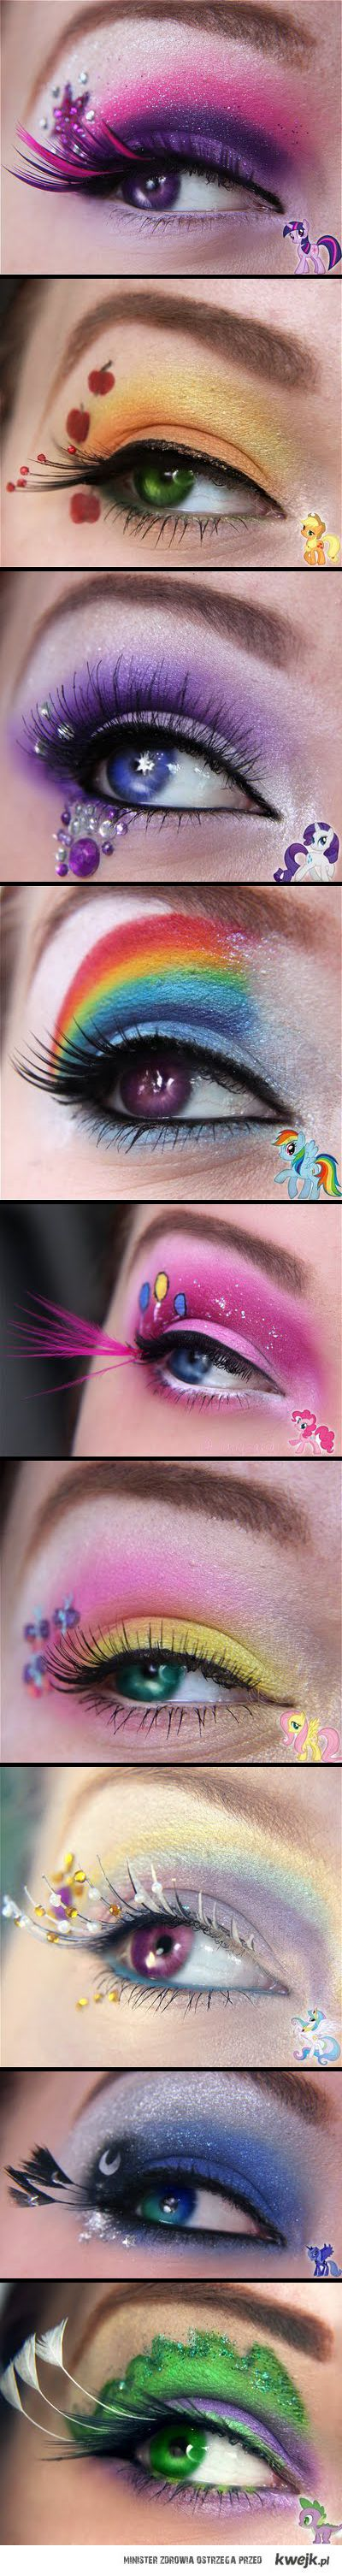 Yes! make-up powers go! MLP-FiM eye makeup